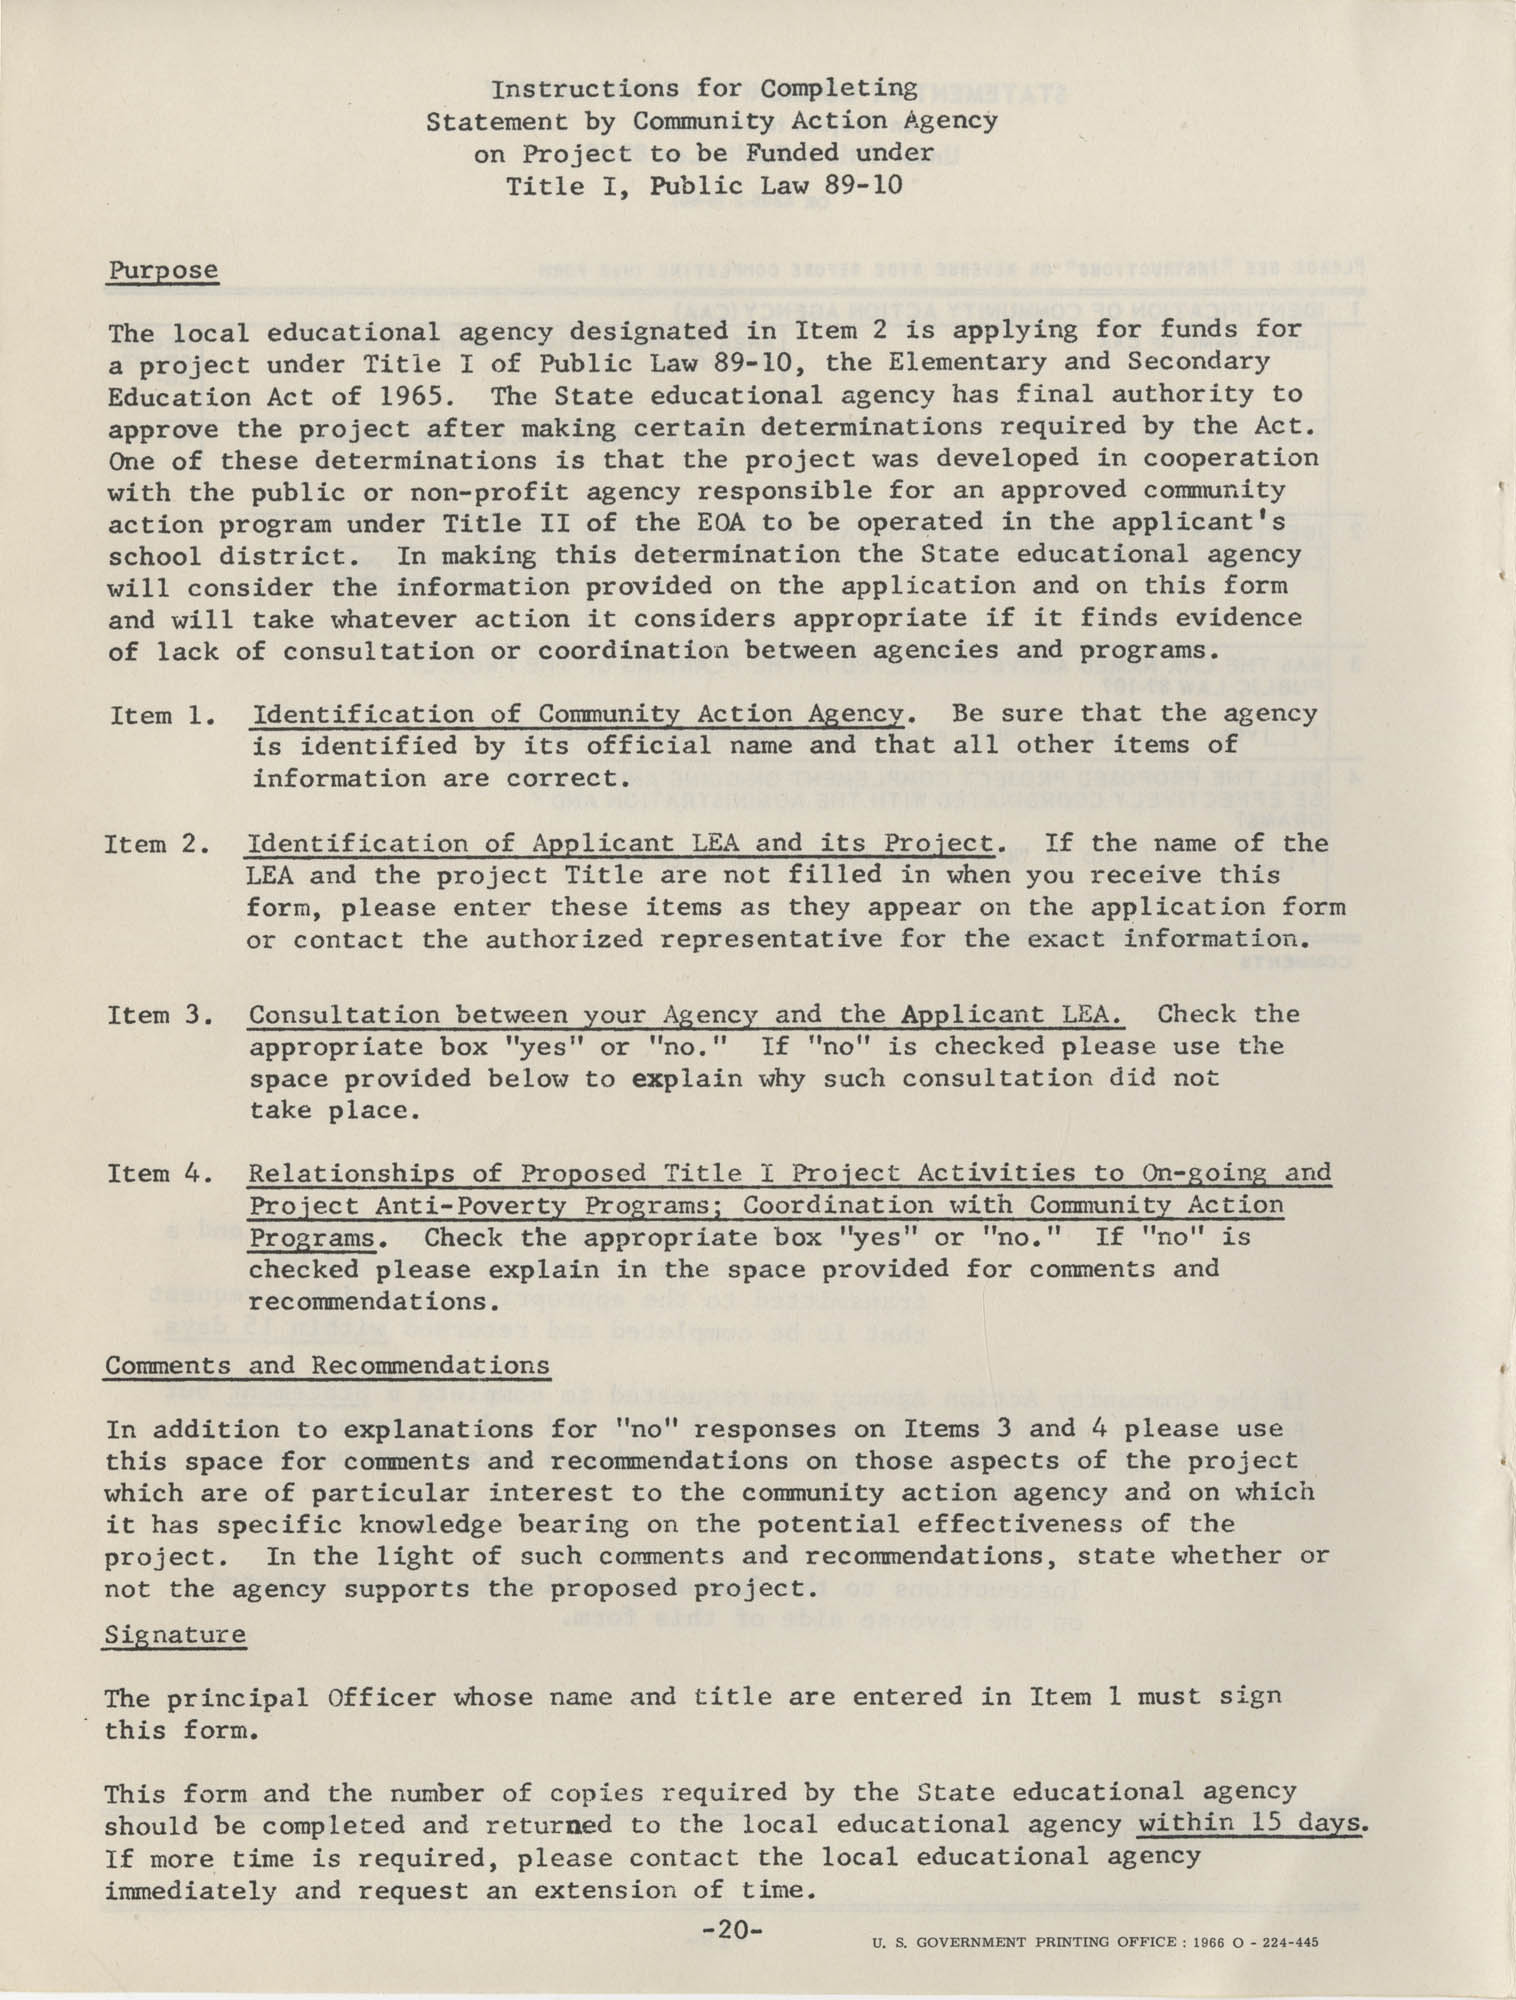 Instructions for Title 1, 1967 Application Forms, Page 20